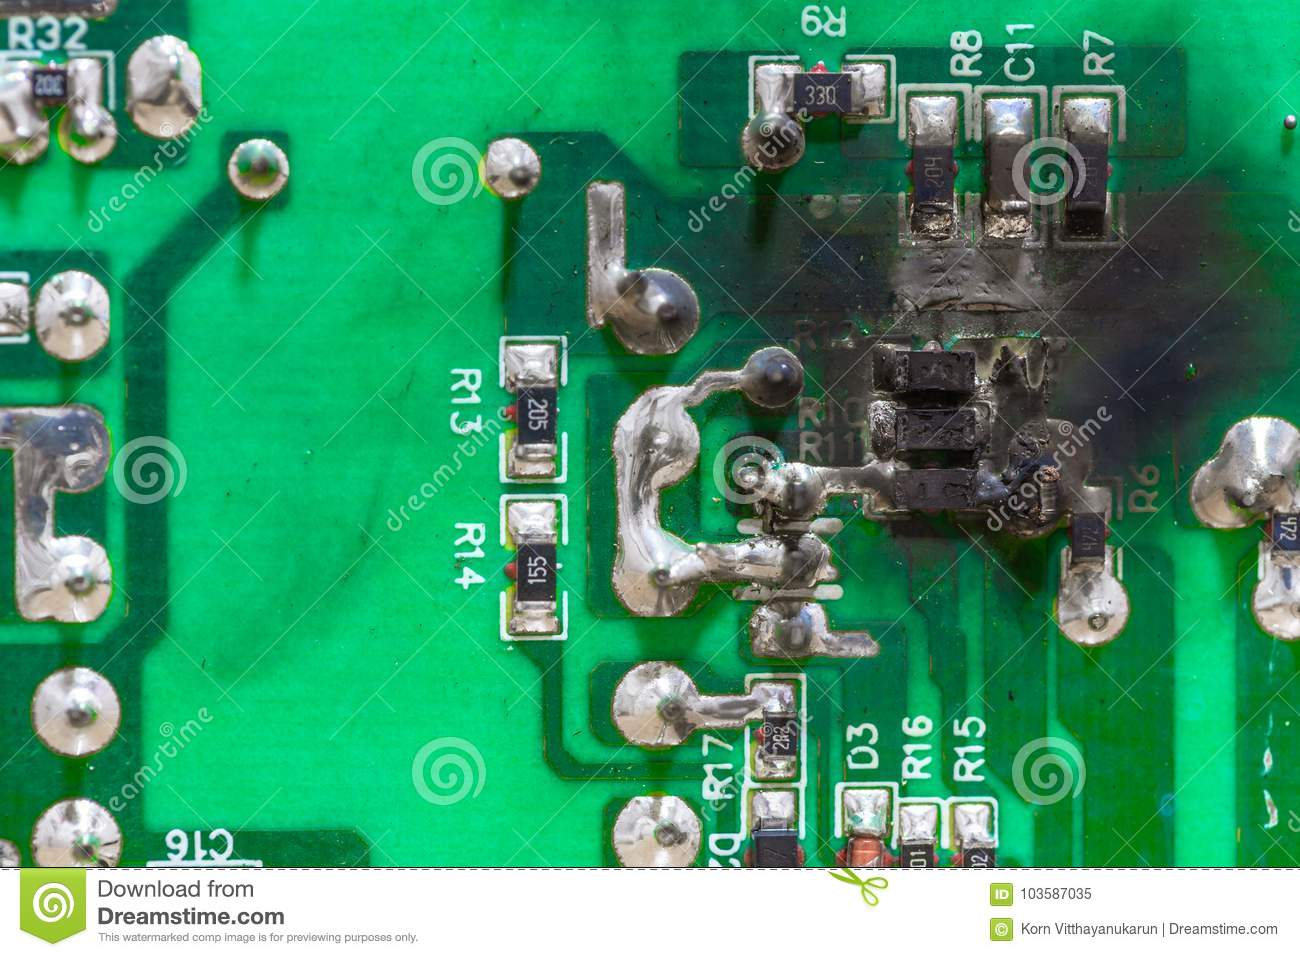 Computer Electrical Short Not Lossing Wiring Diagram Photos Pcb Circuits Computers Components Technology Image Circuit Board Electricity Stock Of Rh Dreamstime Com Blank Circut